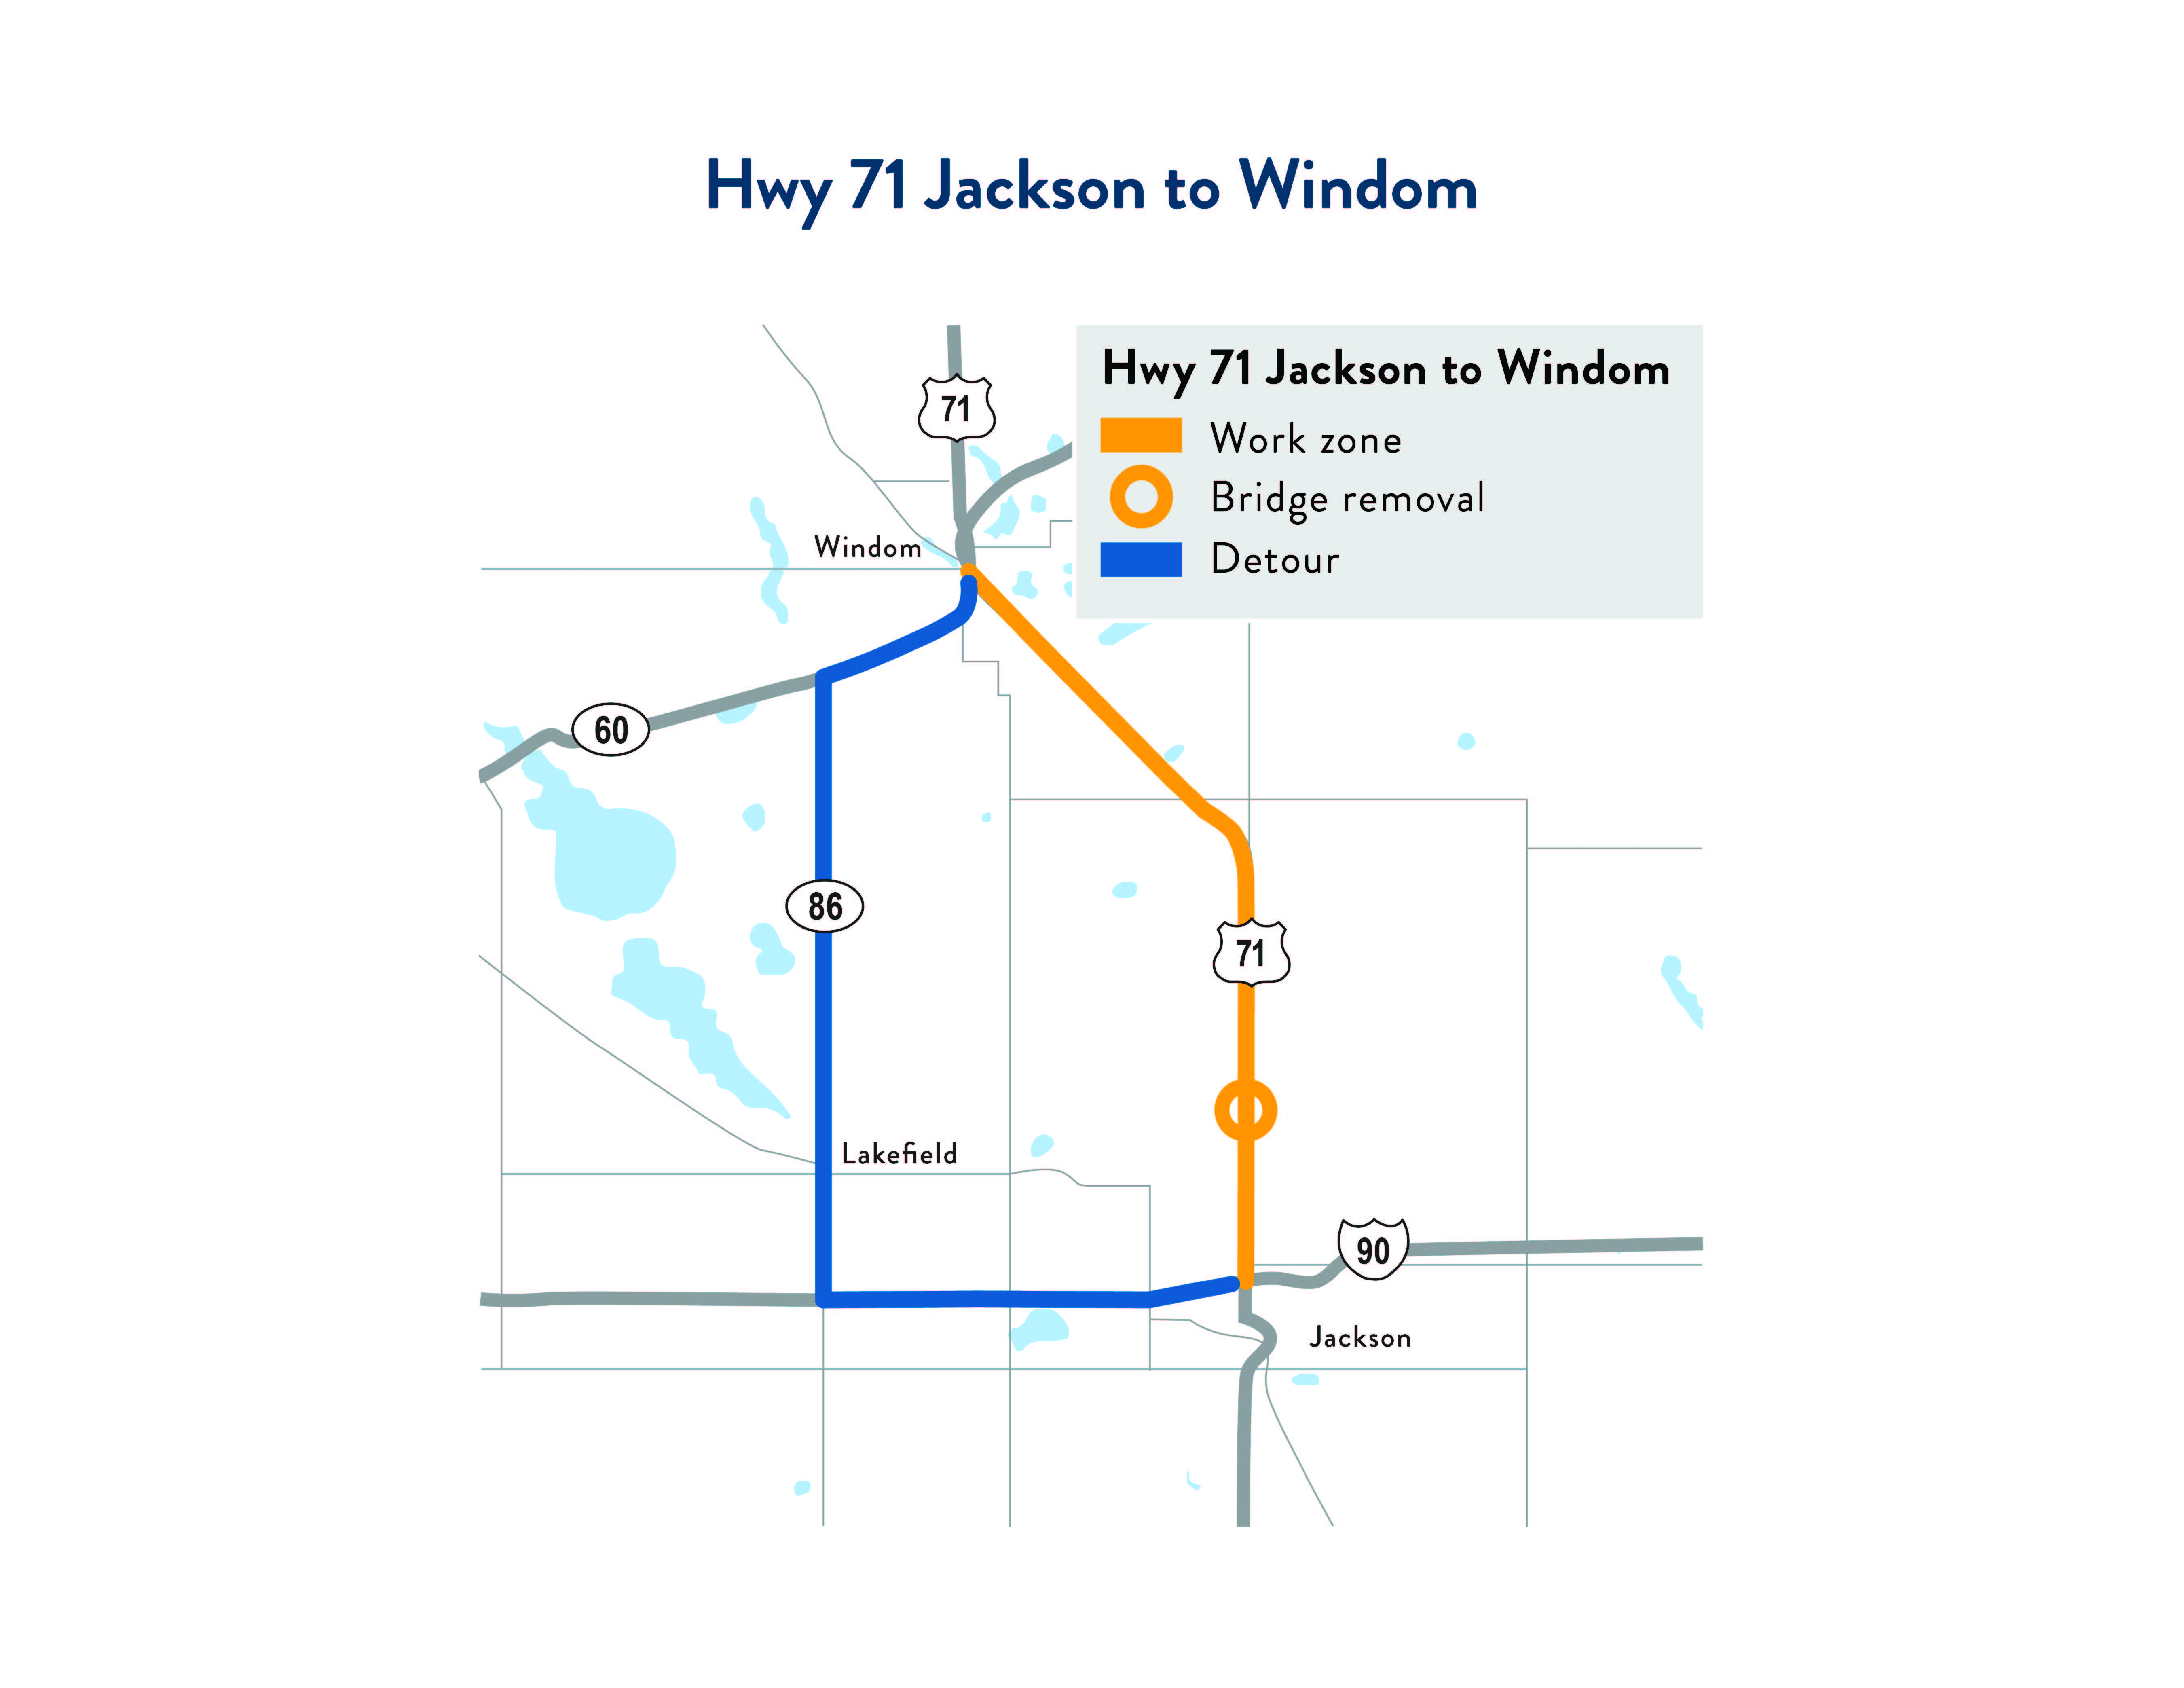 Hwy 71 Jackson to Windom map